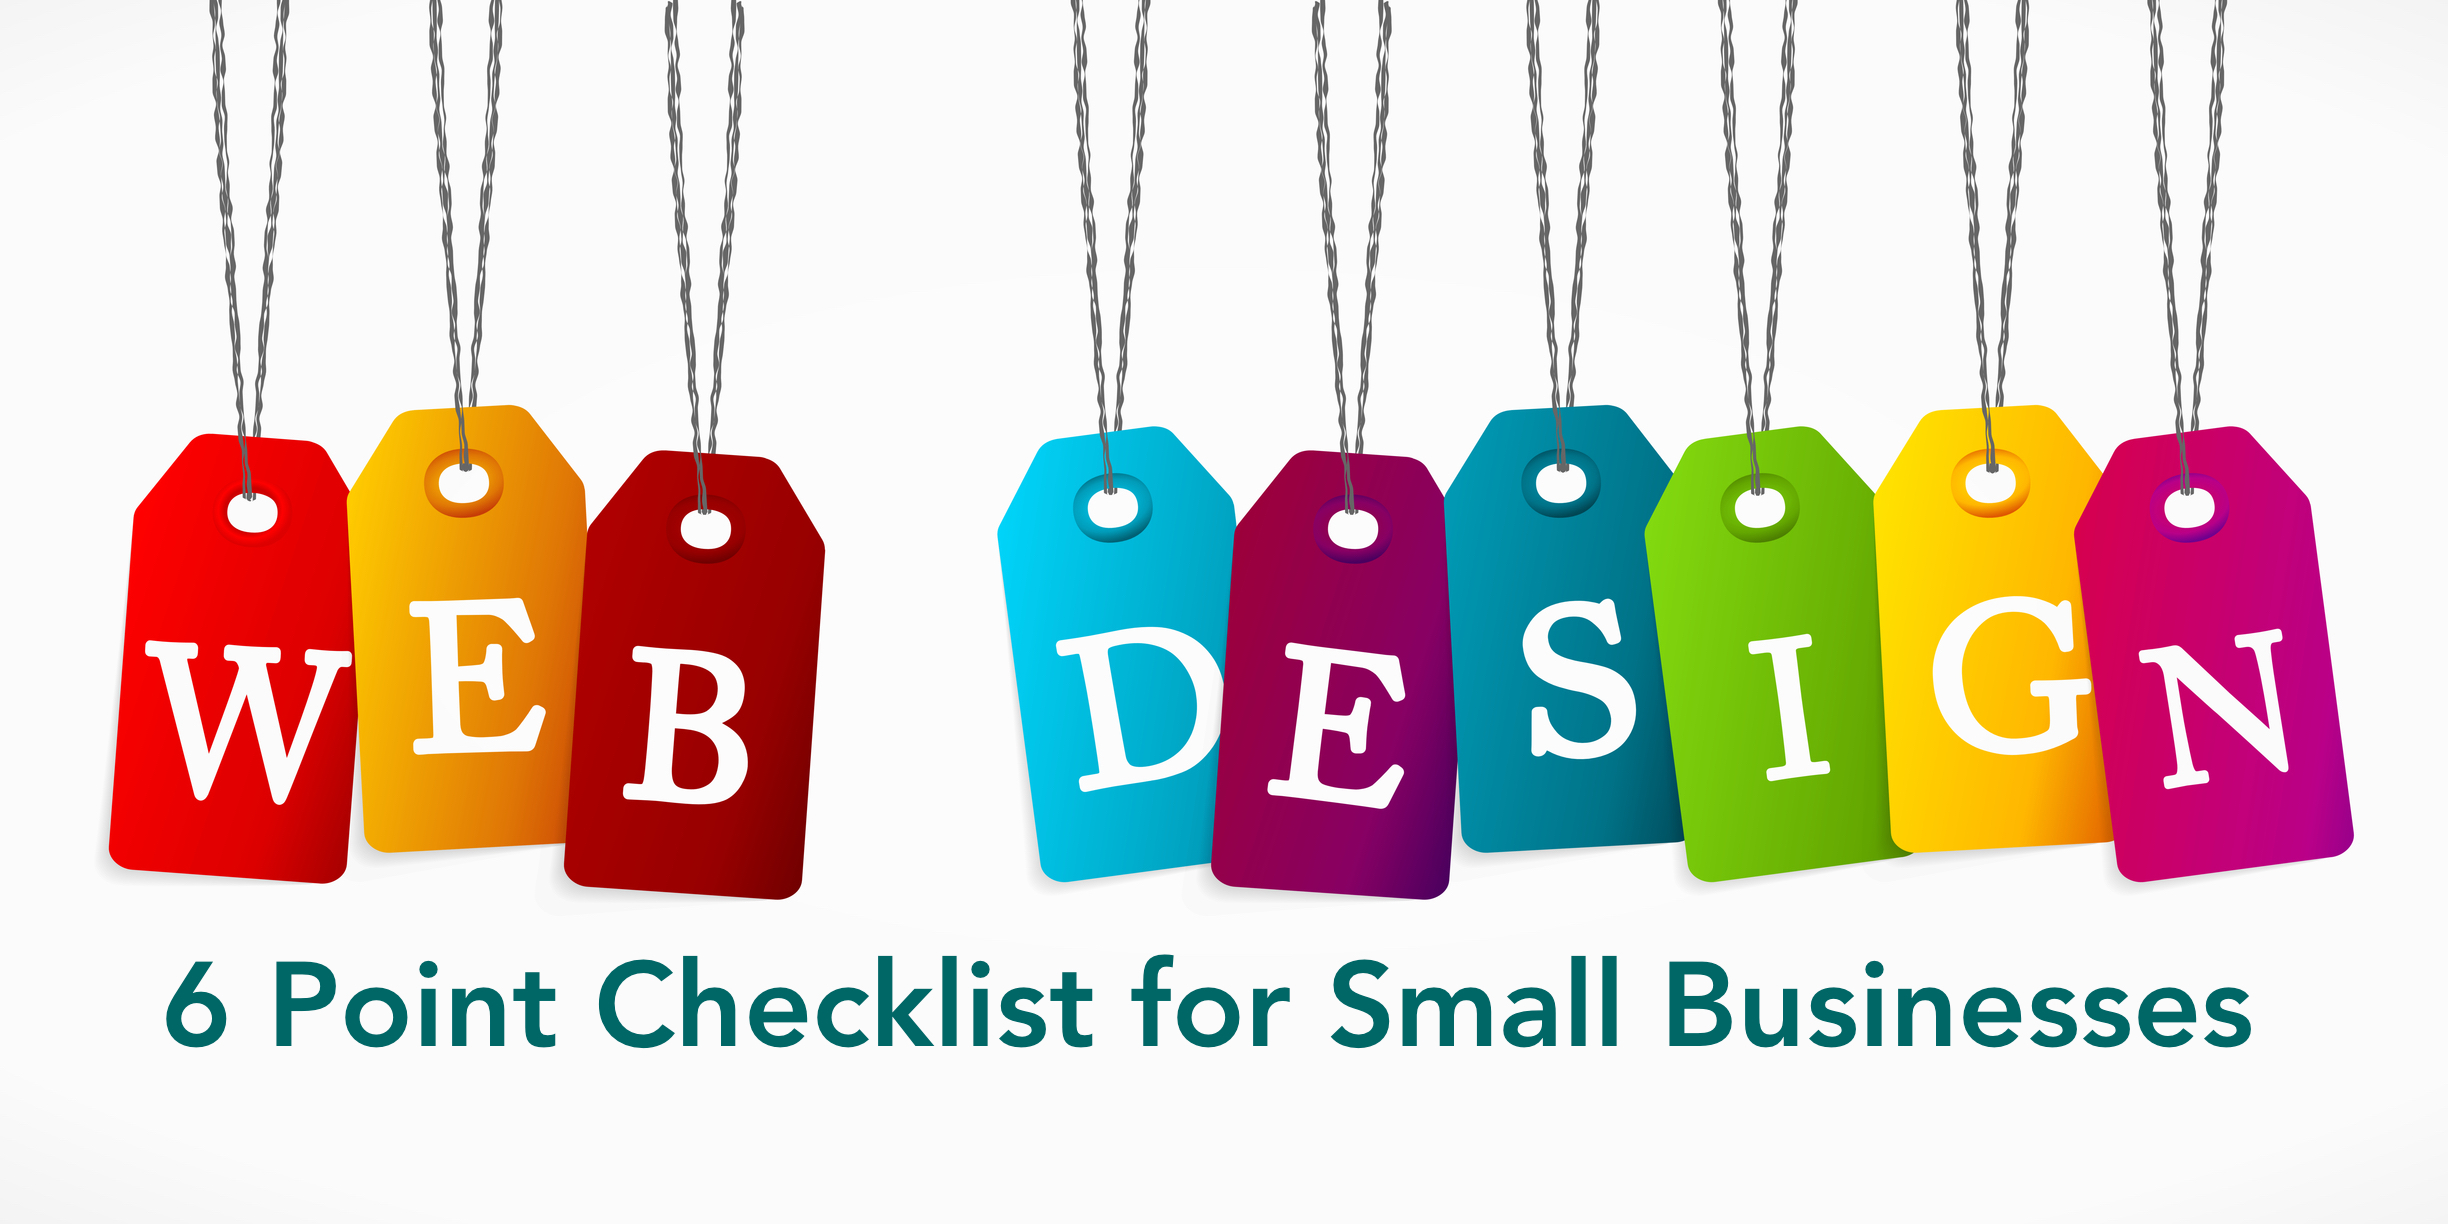 6 Point Checklist for Small Businesses